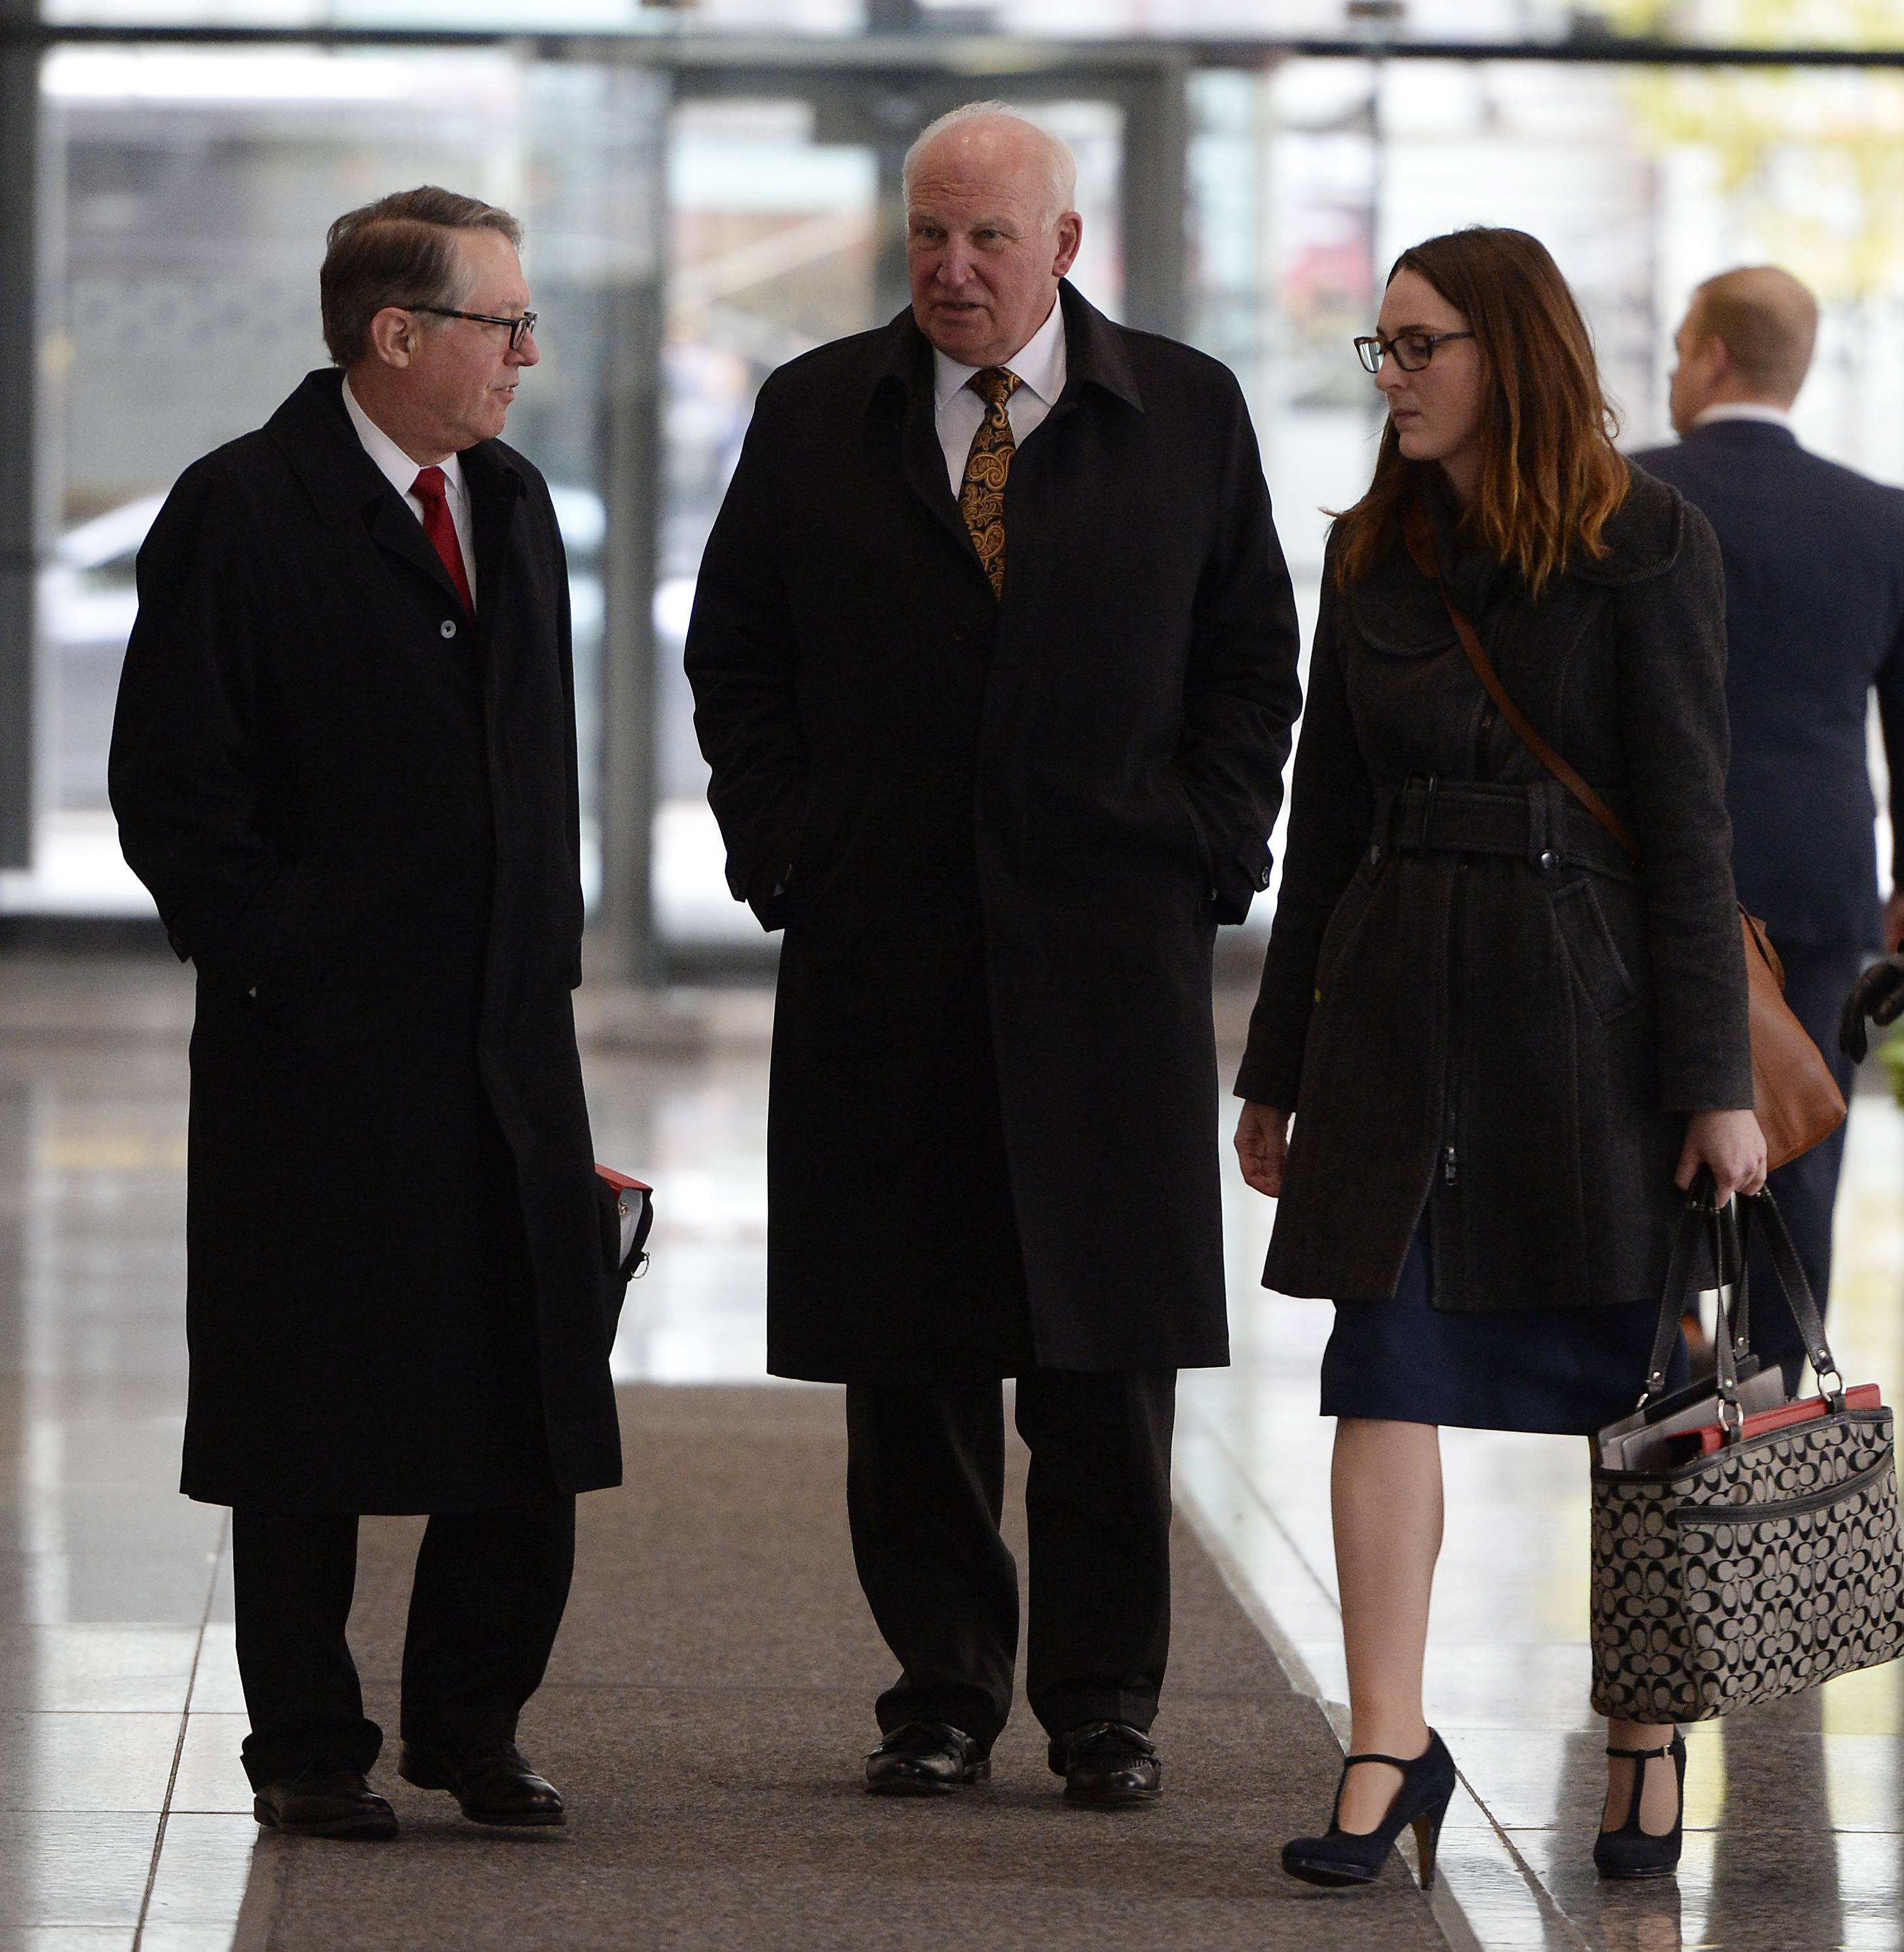 "Former College of DuPage President Robert Breuder, center, said Tuesday was the first time he's been in a federal courthouse and he found it somewhat ""shocking"" to hear his name mentioned aloud."